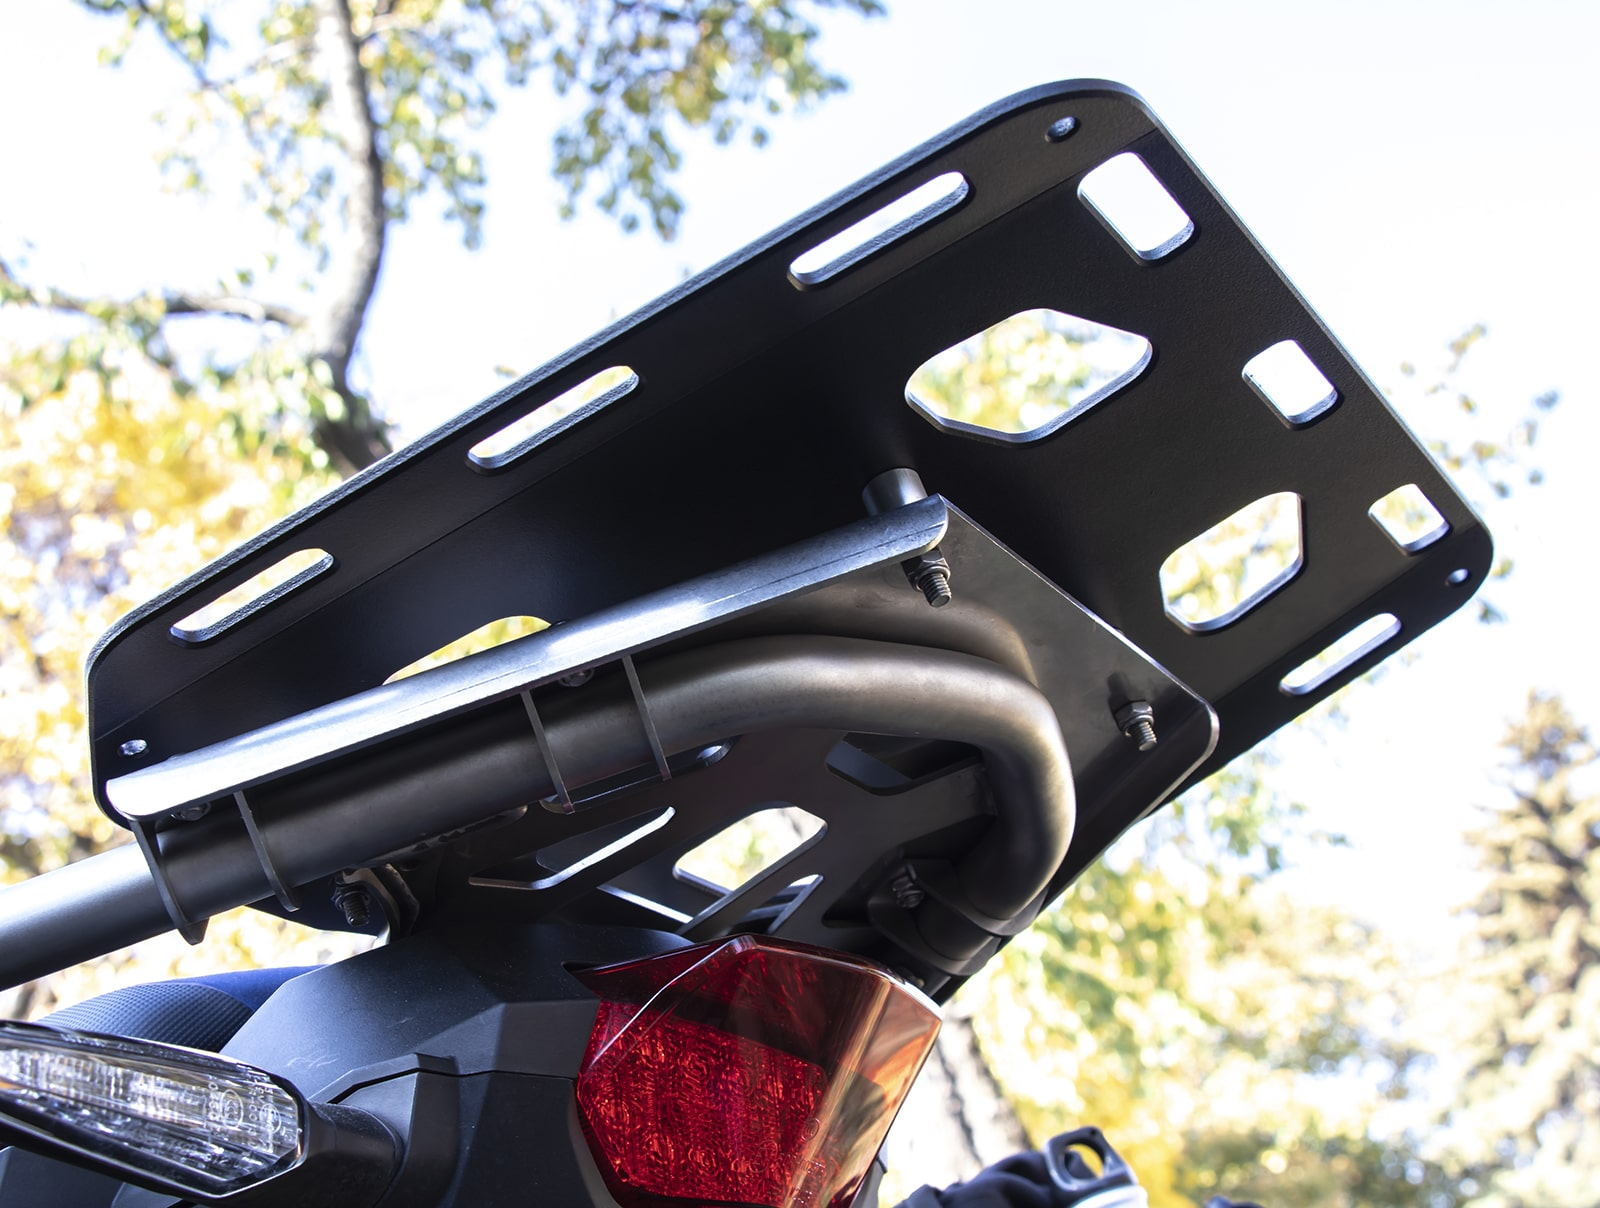 Soft luggage rear rack ATAS